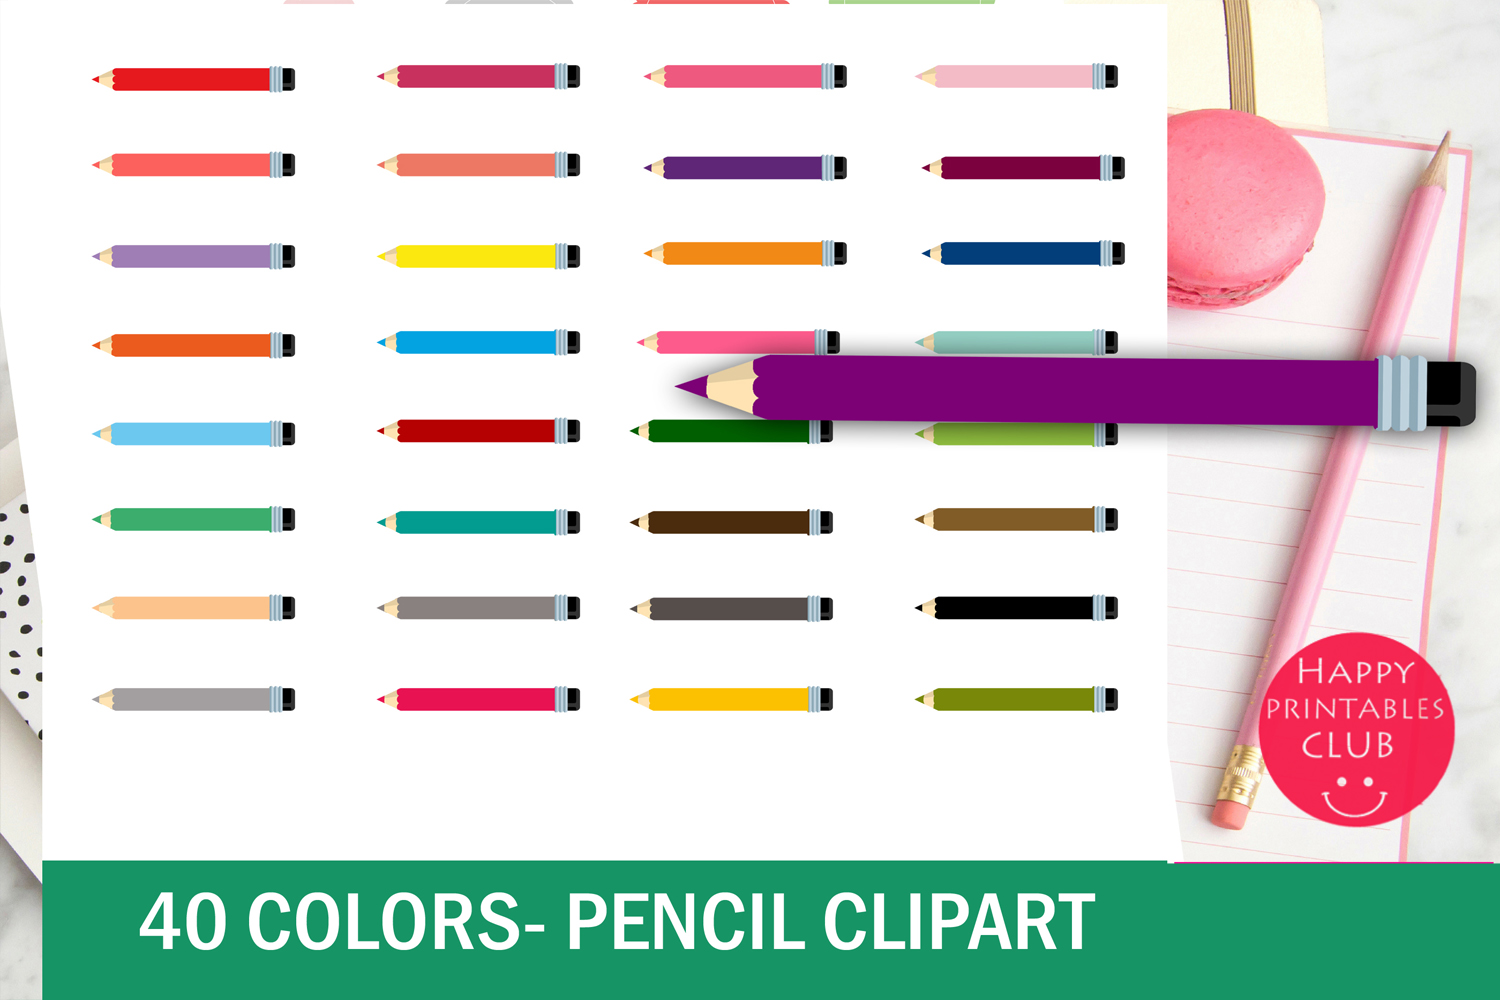 40 Colors Pencil Clipart example image 2